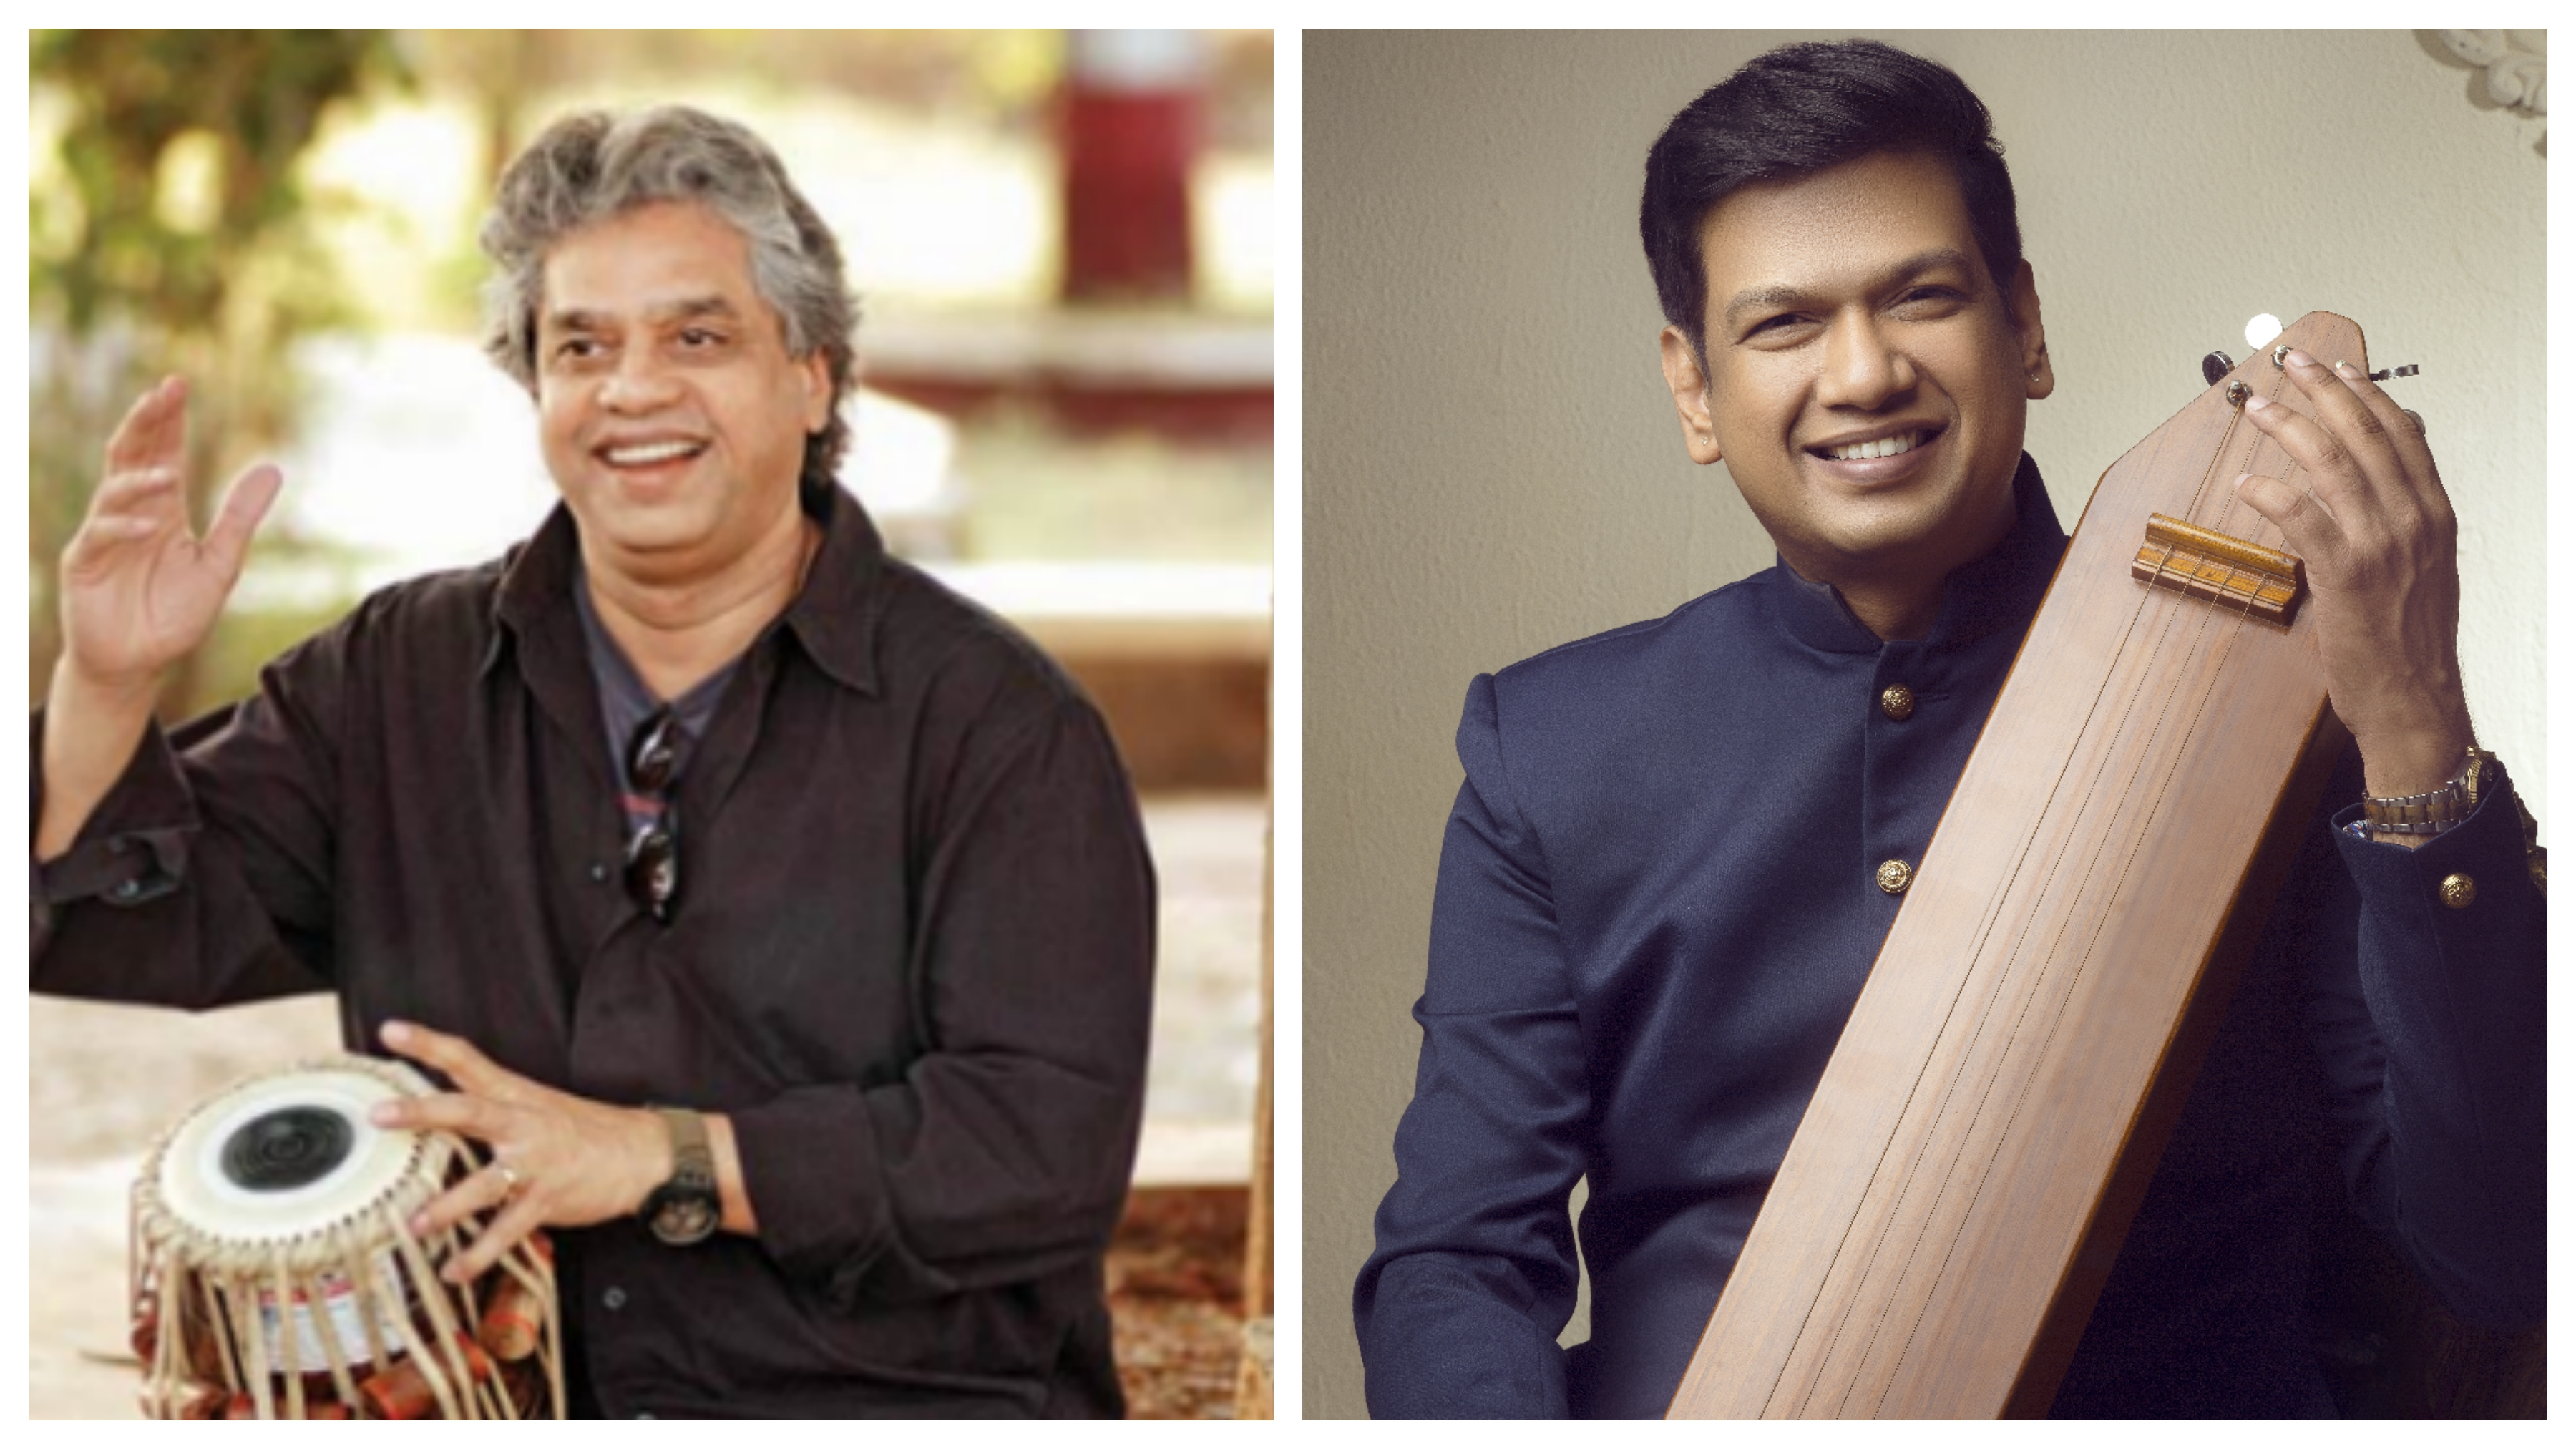 Ustad Fazal Qureshi (left)  has been associated with Mynta, his world music band based in Sweden. Vijay Prakash (right) has done backing vocals for about 25 foreign films including Hollywood. Photo courtesy: Arte Compass